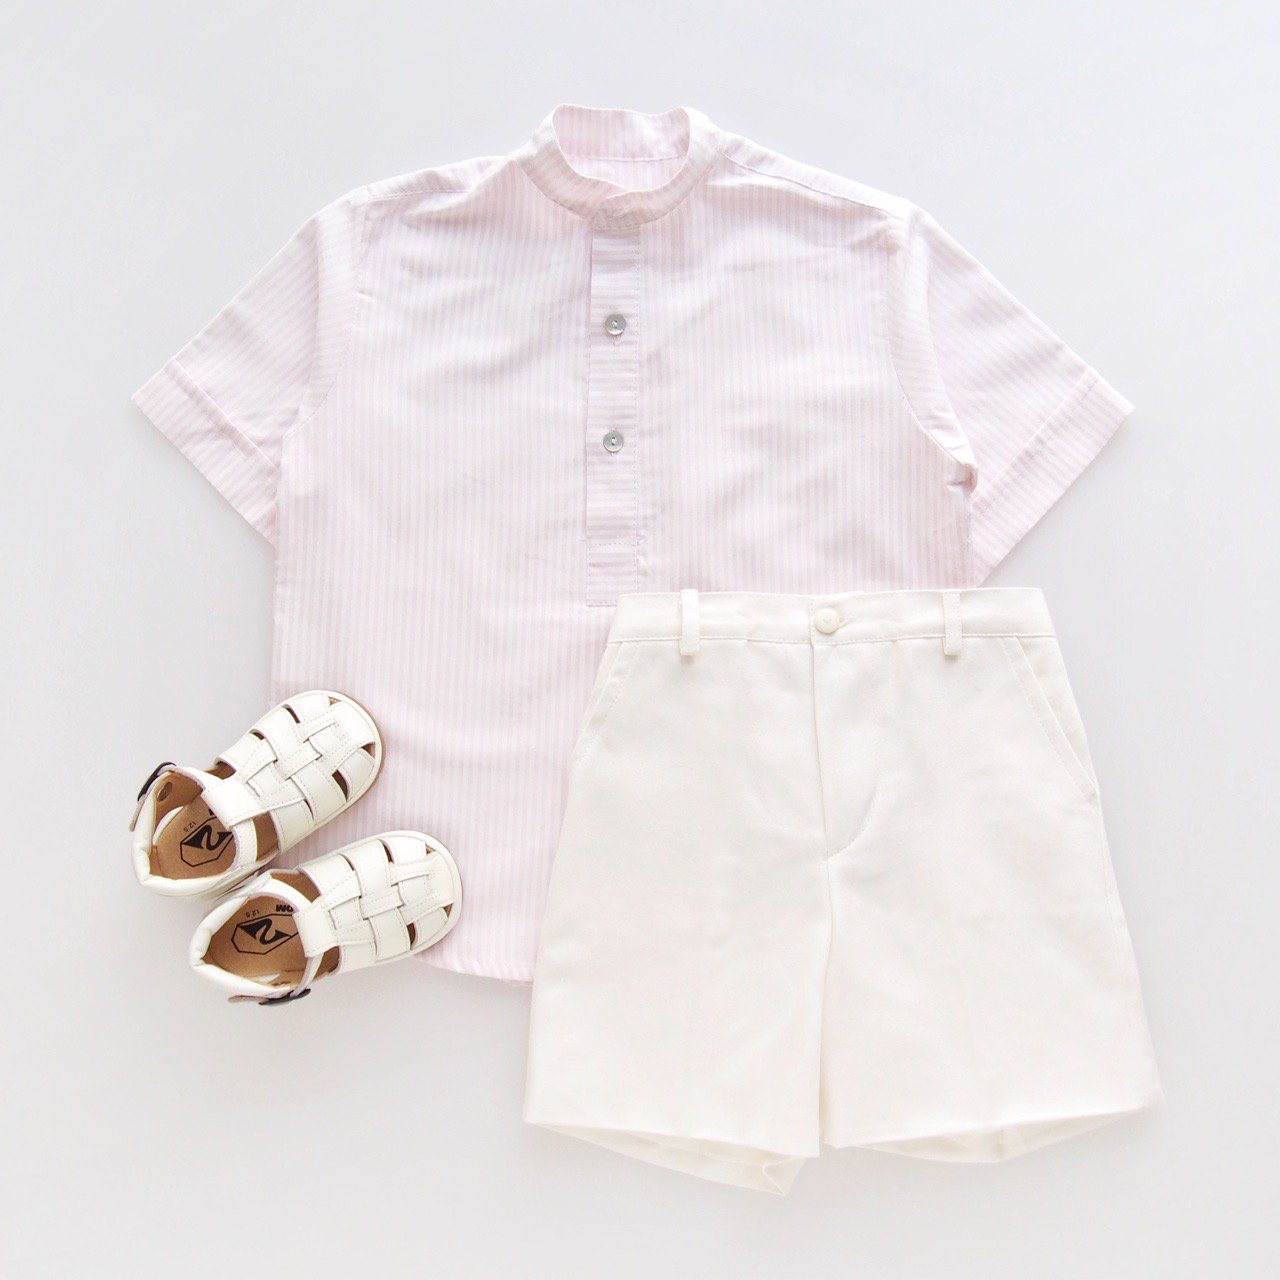 <img class='new_mark_img1' src='https://img.shop-pro.jp/img/new/icons14.gif' style='border:none;display:inline;margin:0px;padding:0px;width:auto;' />Pi & Pa - Pink stripes boy's shirt